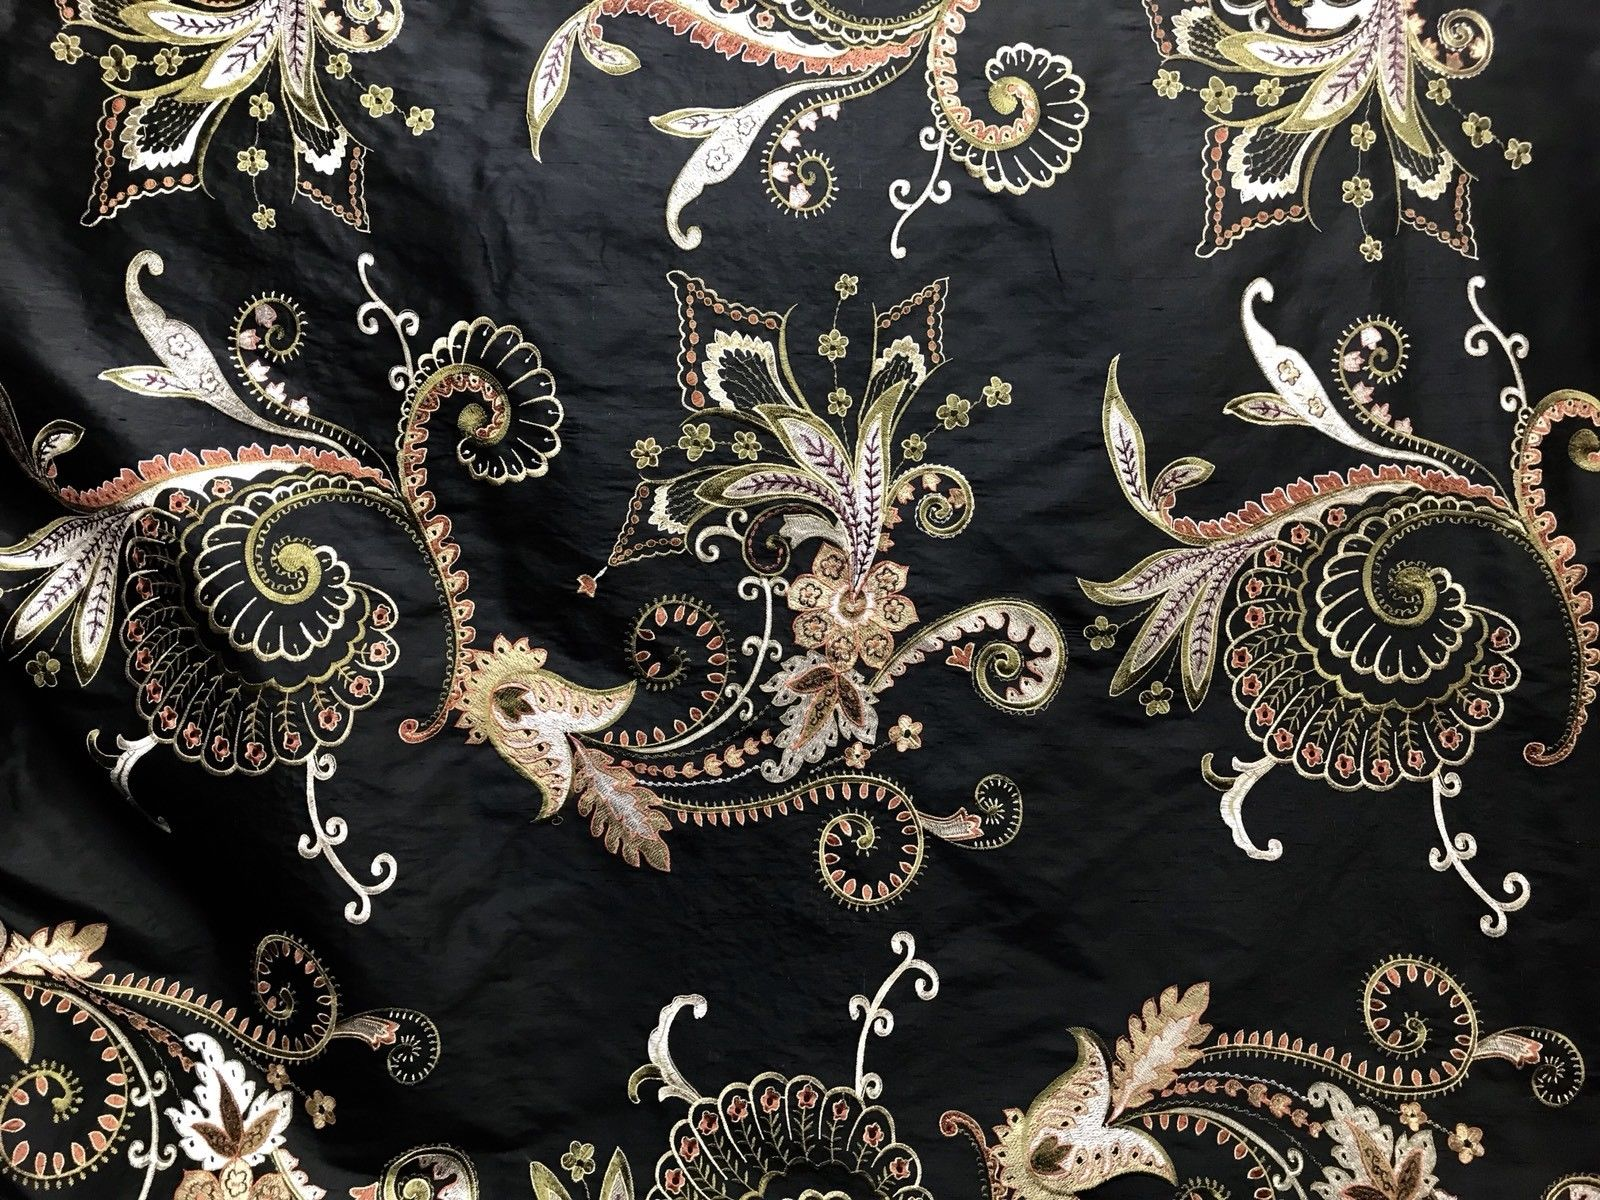 NEW Designer 100% Silk Taffeta Floral Embroidered Fabric - Black - Fancy Styles Fabric Pierre Frey Lee Jofa Brunschwig & Fils